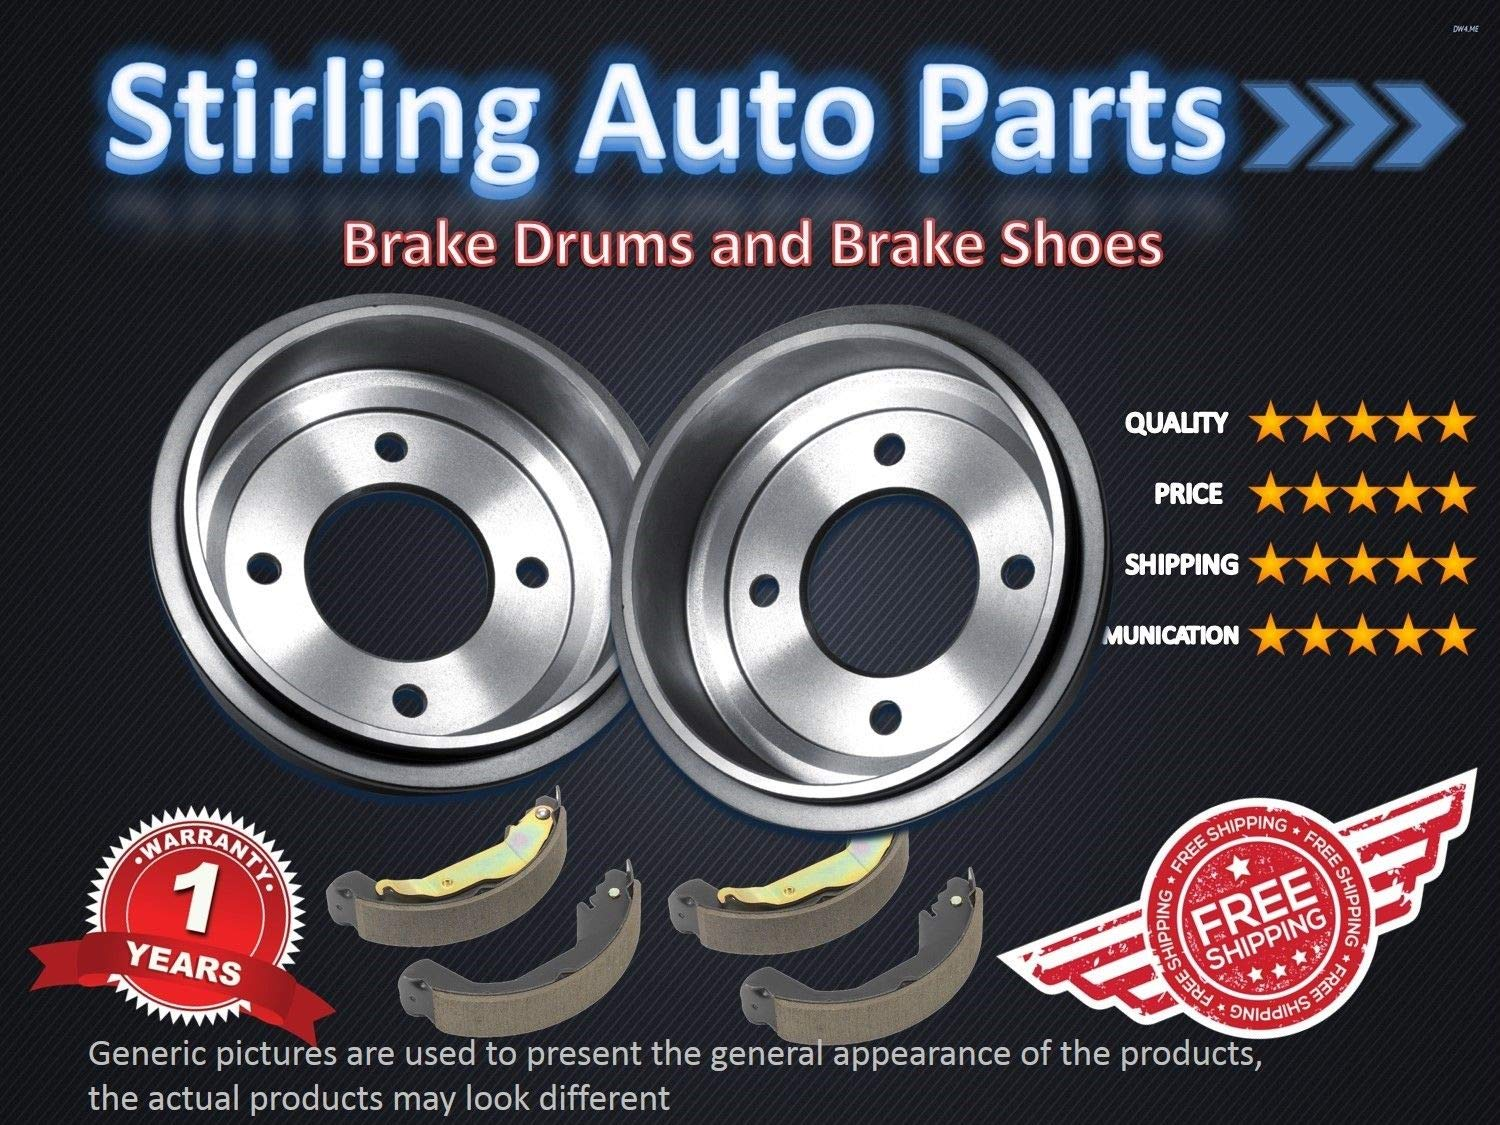 2011 For Hyundai Accent Rear Brake Drums And Shoes Fits Both Left and Right With Two Years Manufacturer Warranty Anti Rust Coated Drums